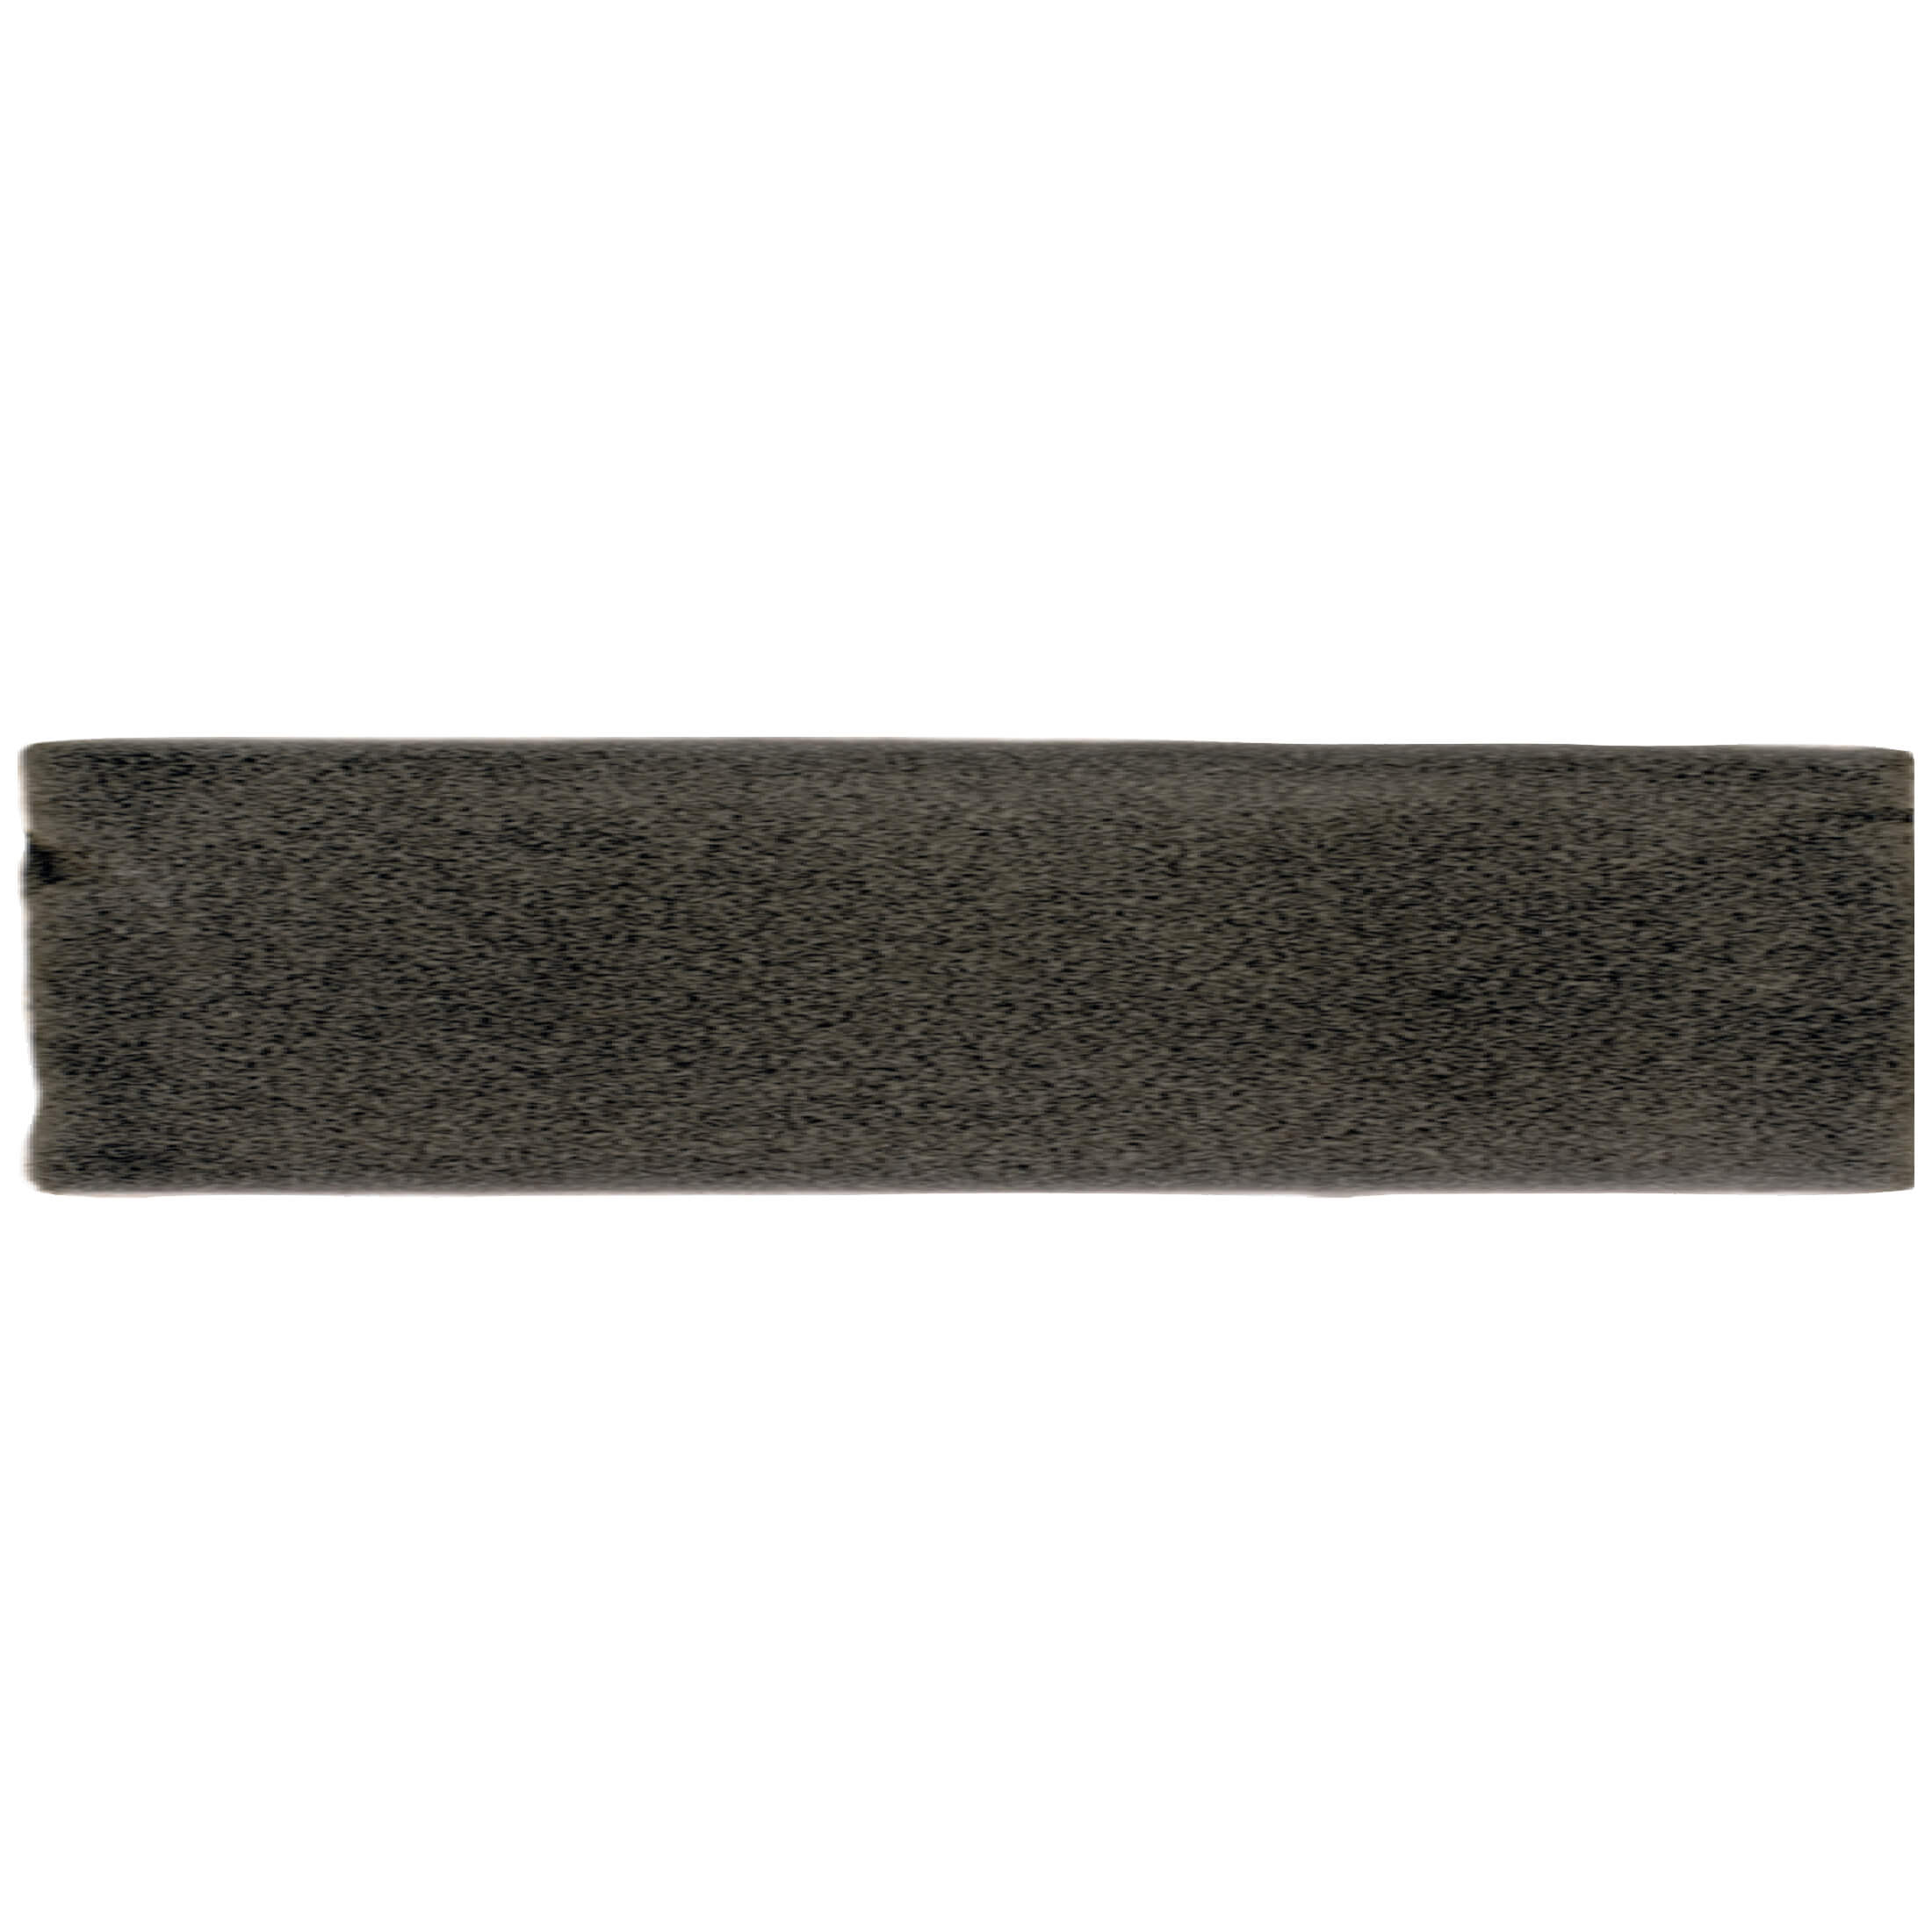 ADEX-ADNT1018-LISO--7.5 cm-30 cm-NATURE>CHARCOAL